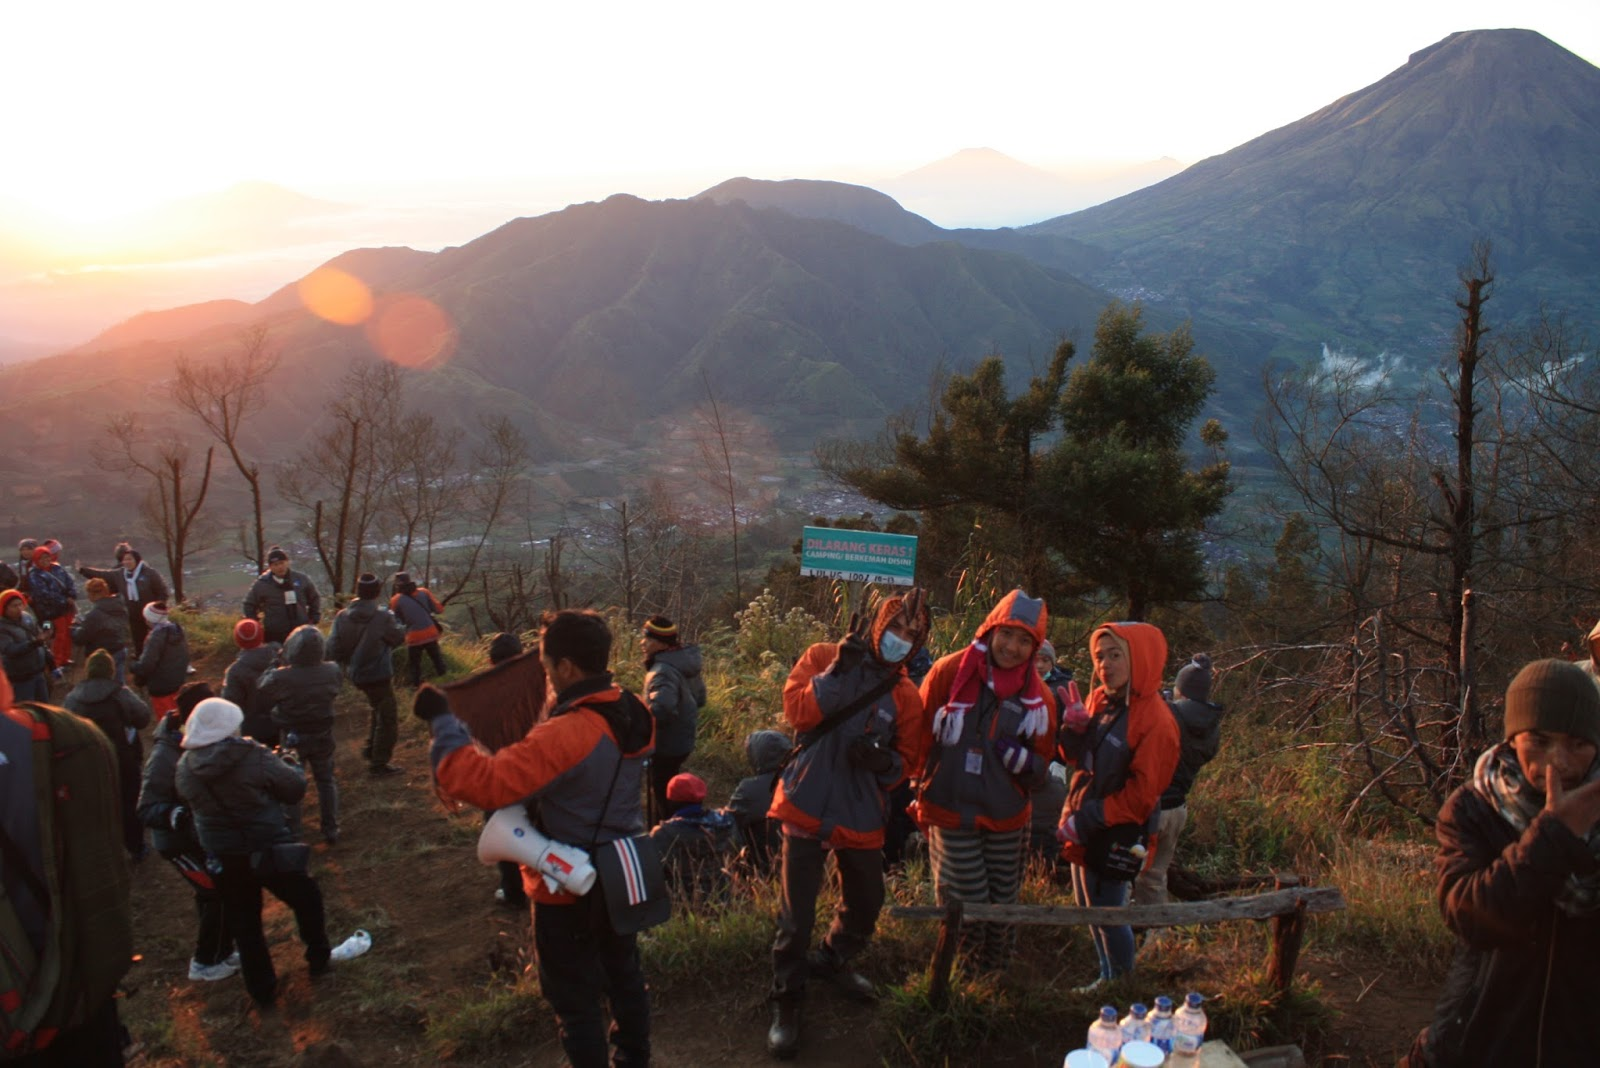 Dieng Indonesia Travel 2015